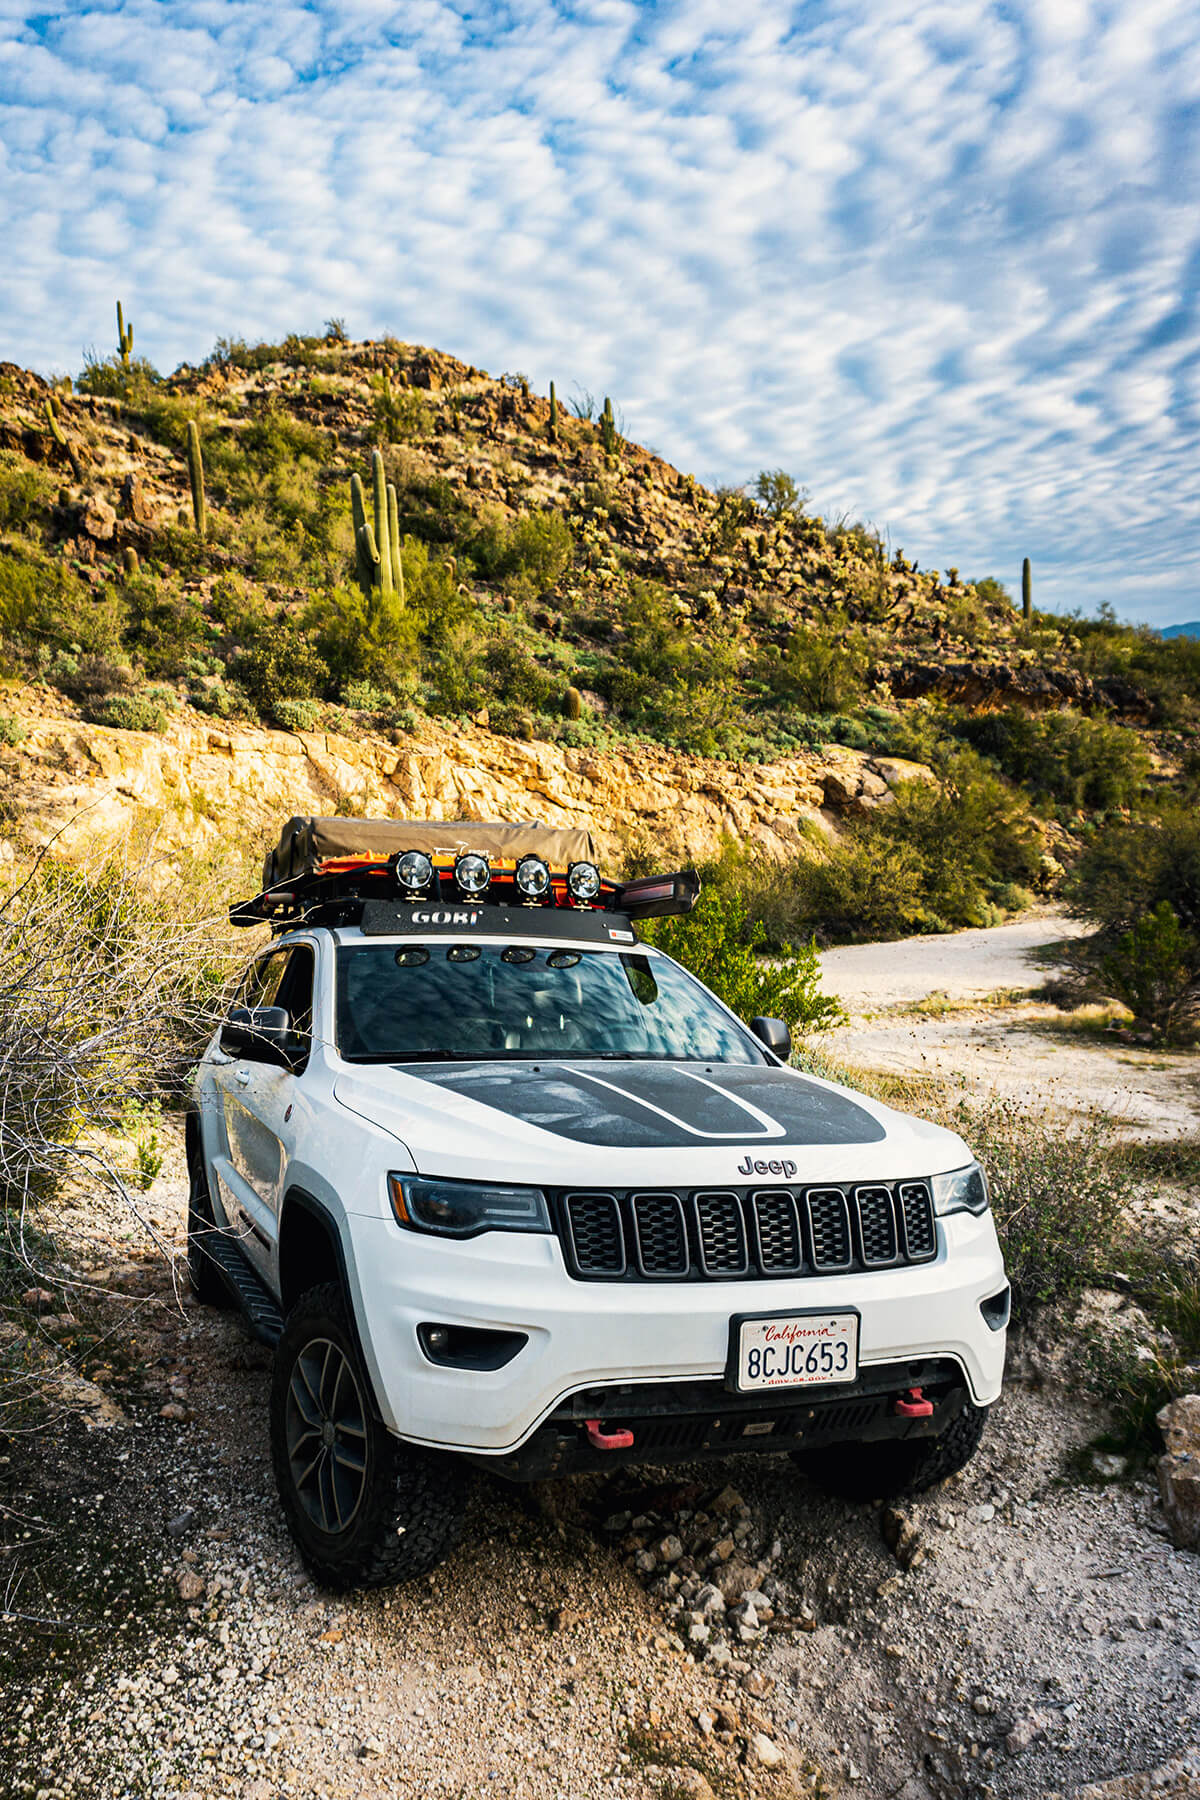 Lifted Jeep Grand Cherokee Trailhawk On 33s Modified For Overland Expeditions Offroadium Com